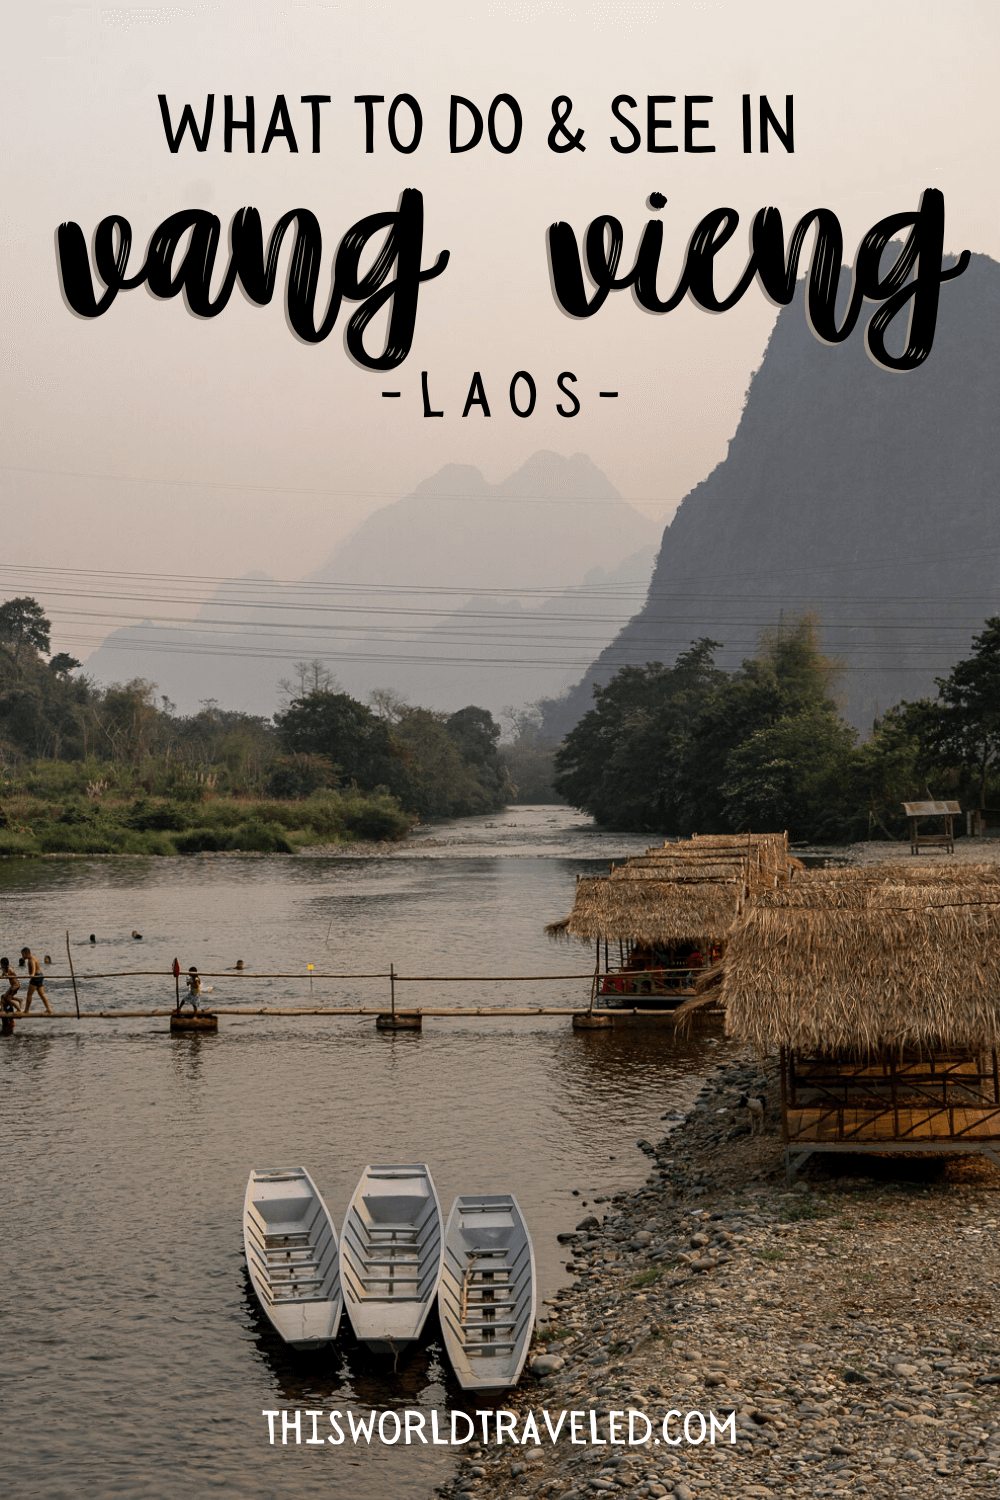 Limestone cliffs and a small bamboo bridge at the Pha Tang Village near Vang Vieng in Laos